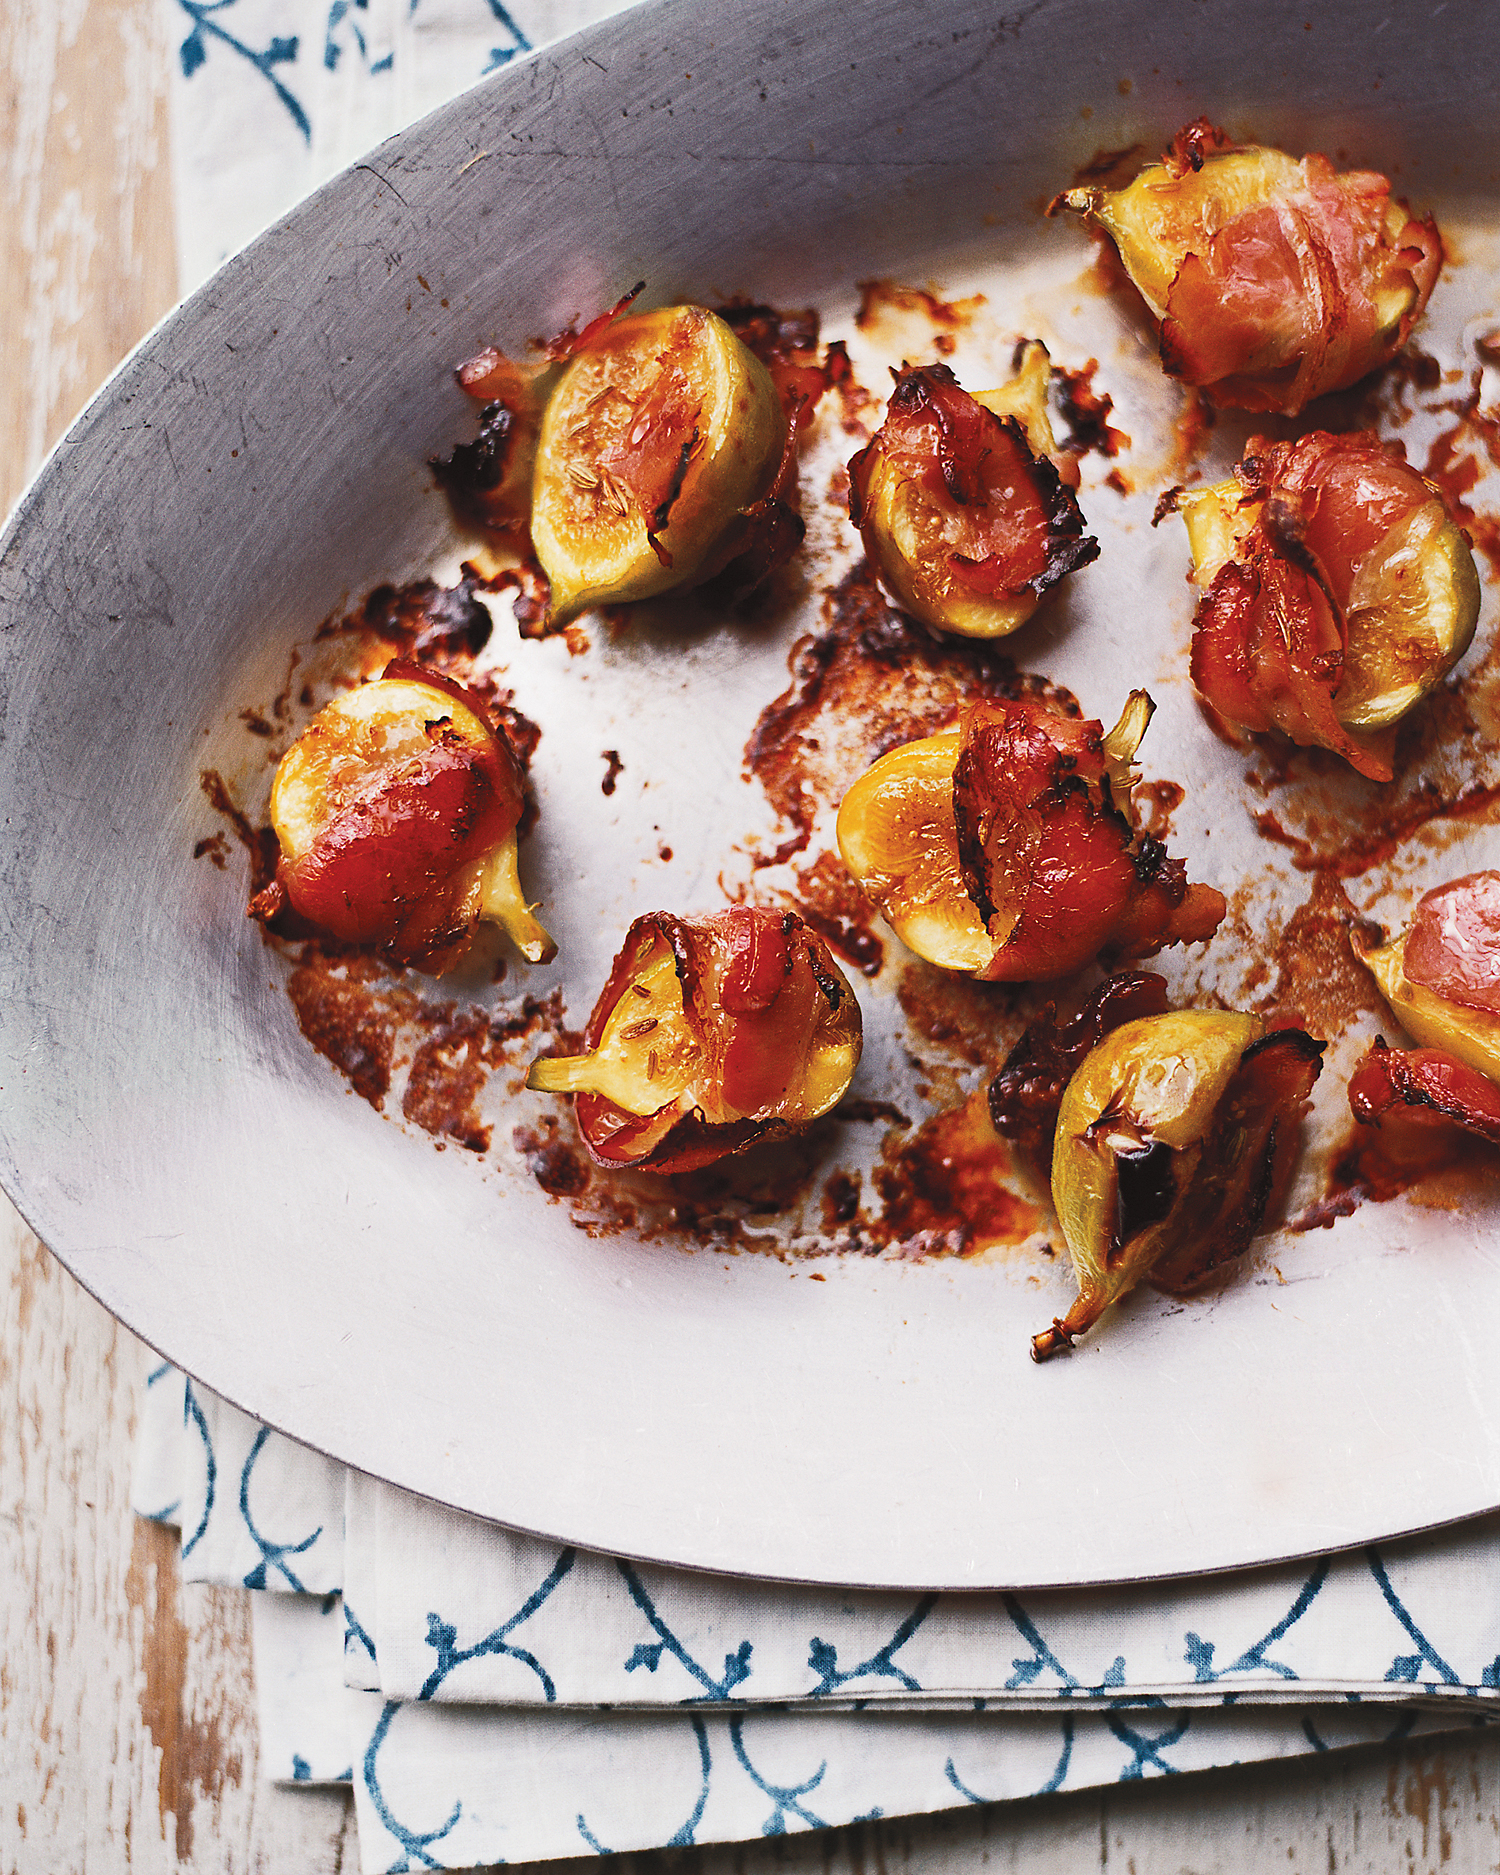 Broiled Figs with Pancetta